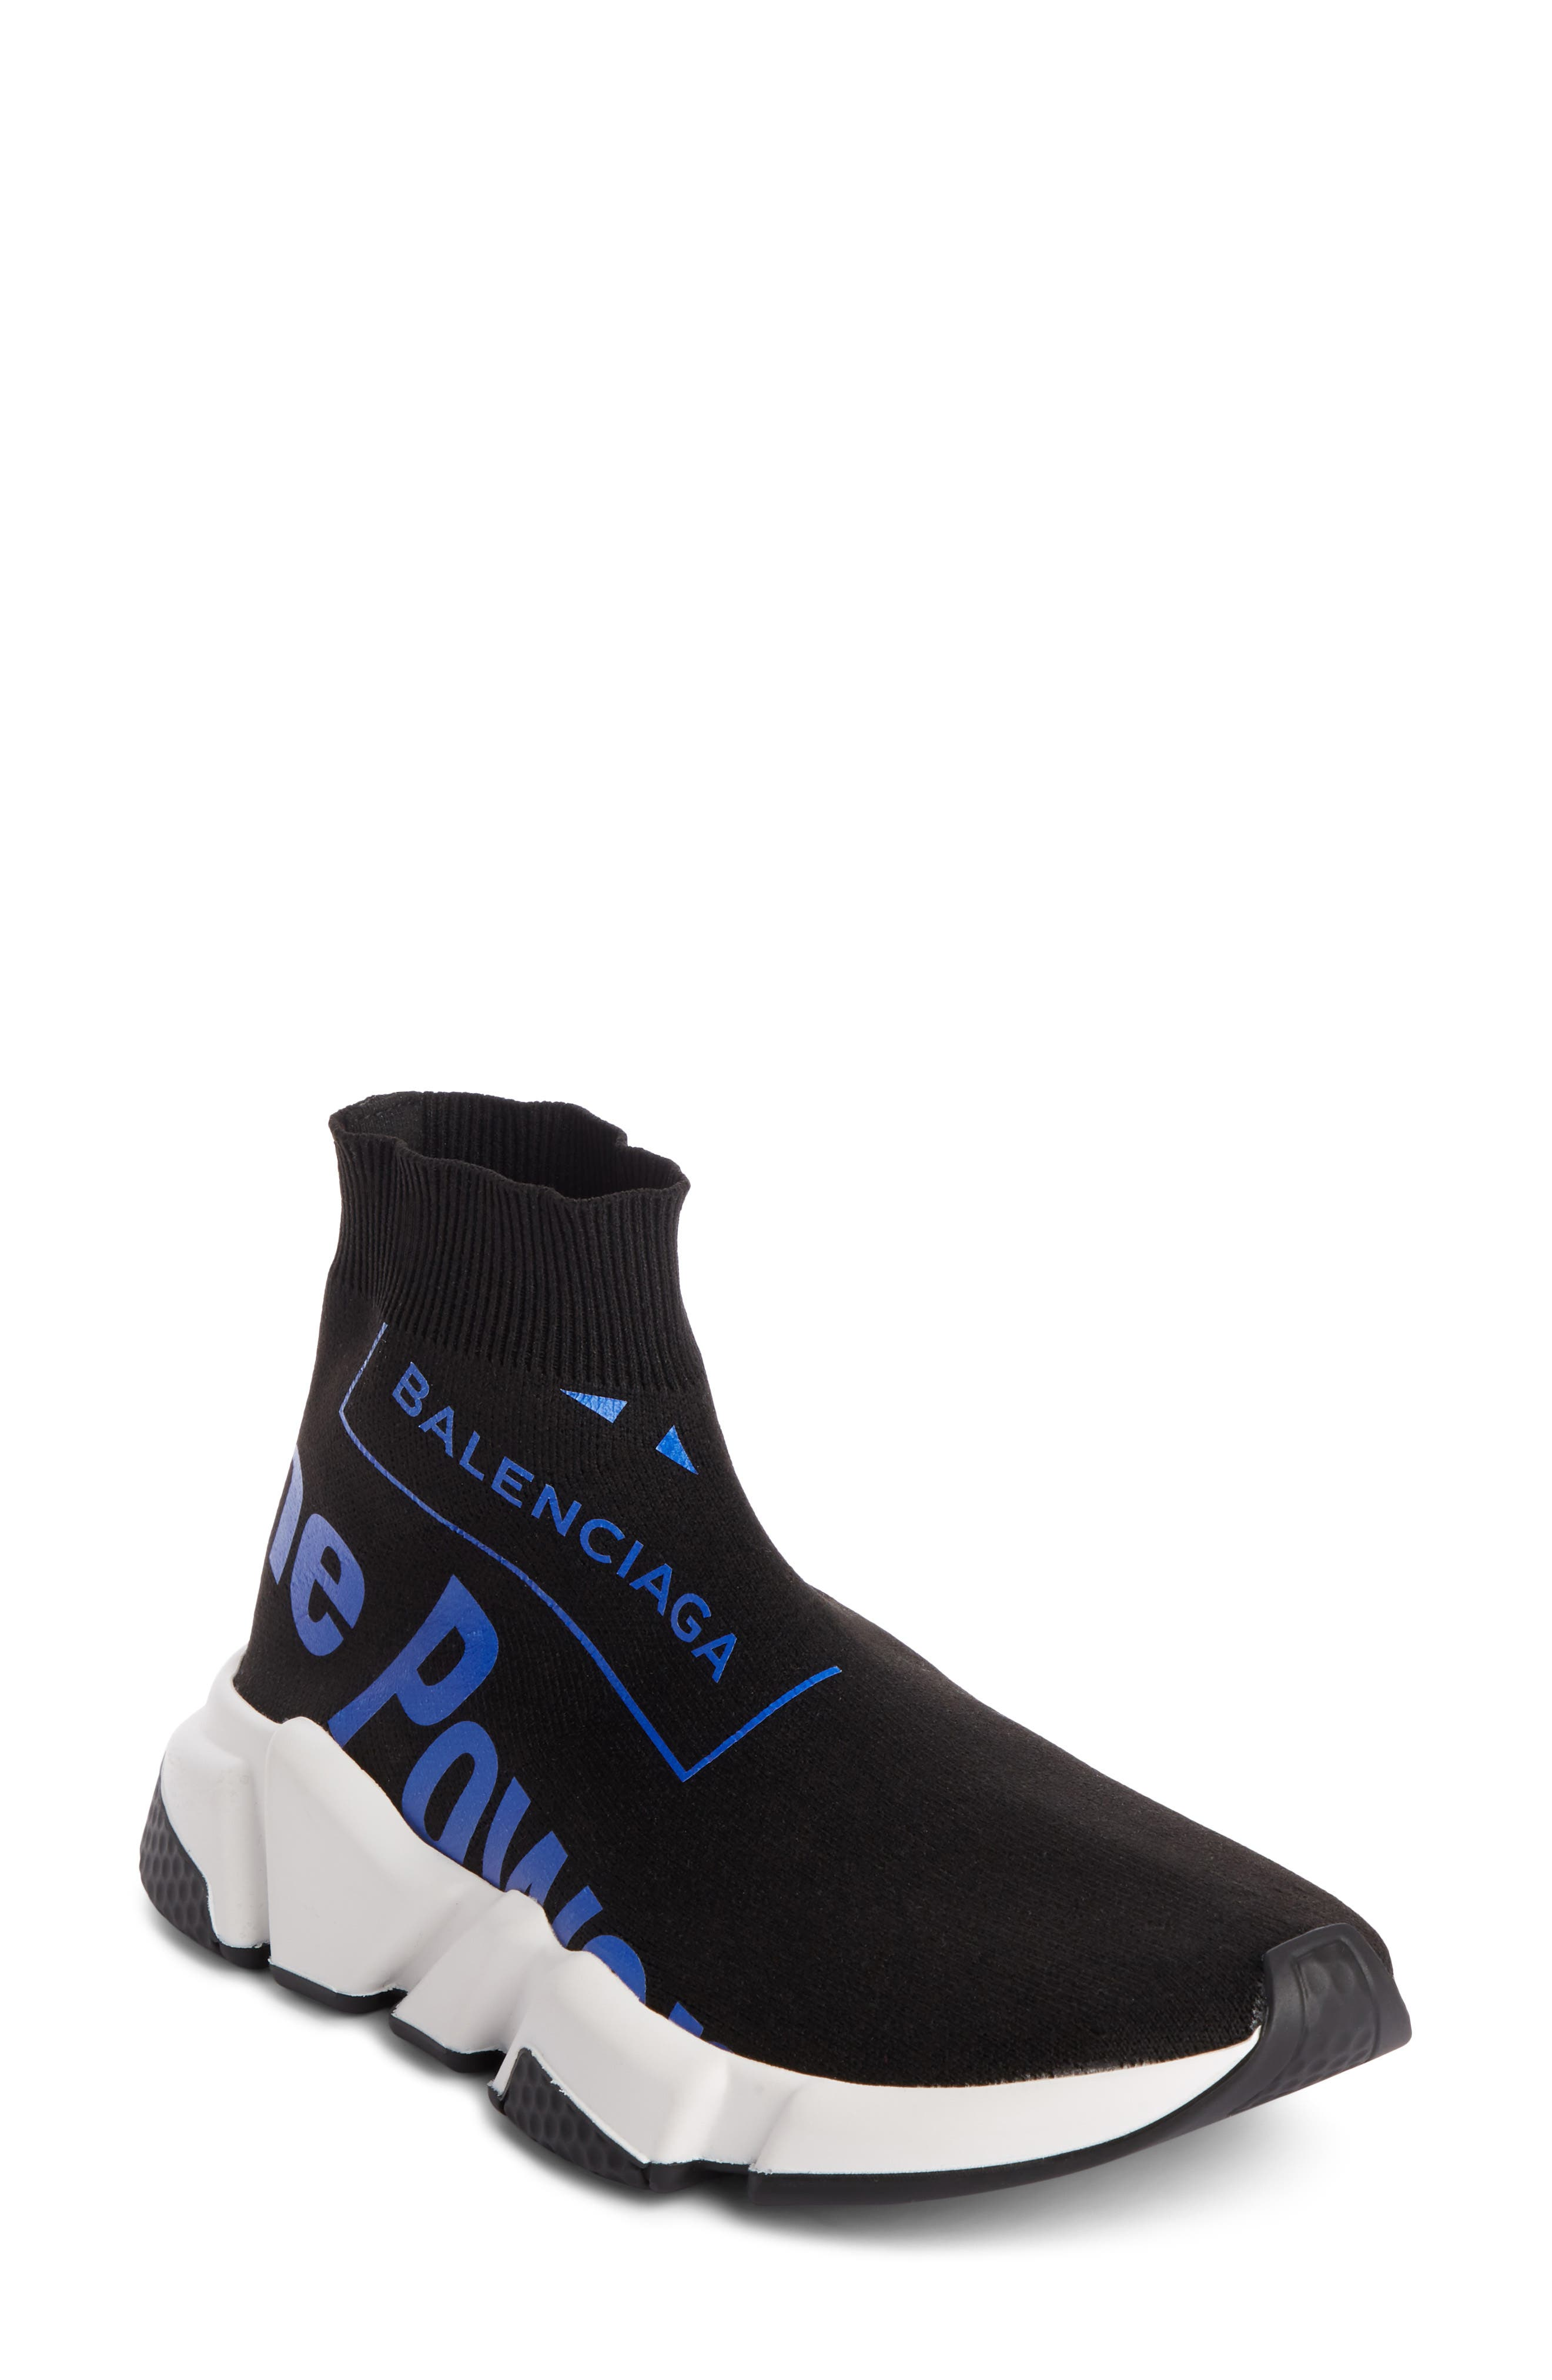 Dream Speed Trainer Sneaker,                         Main,                         color, 006